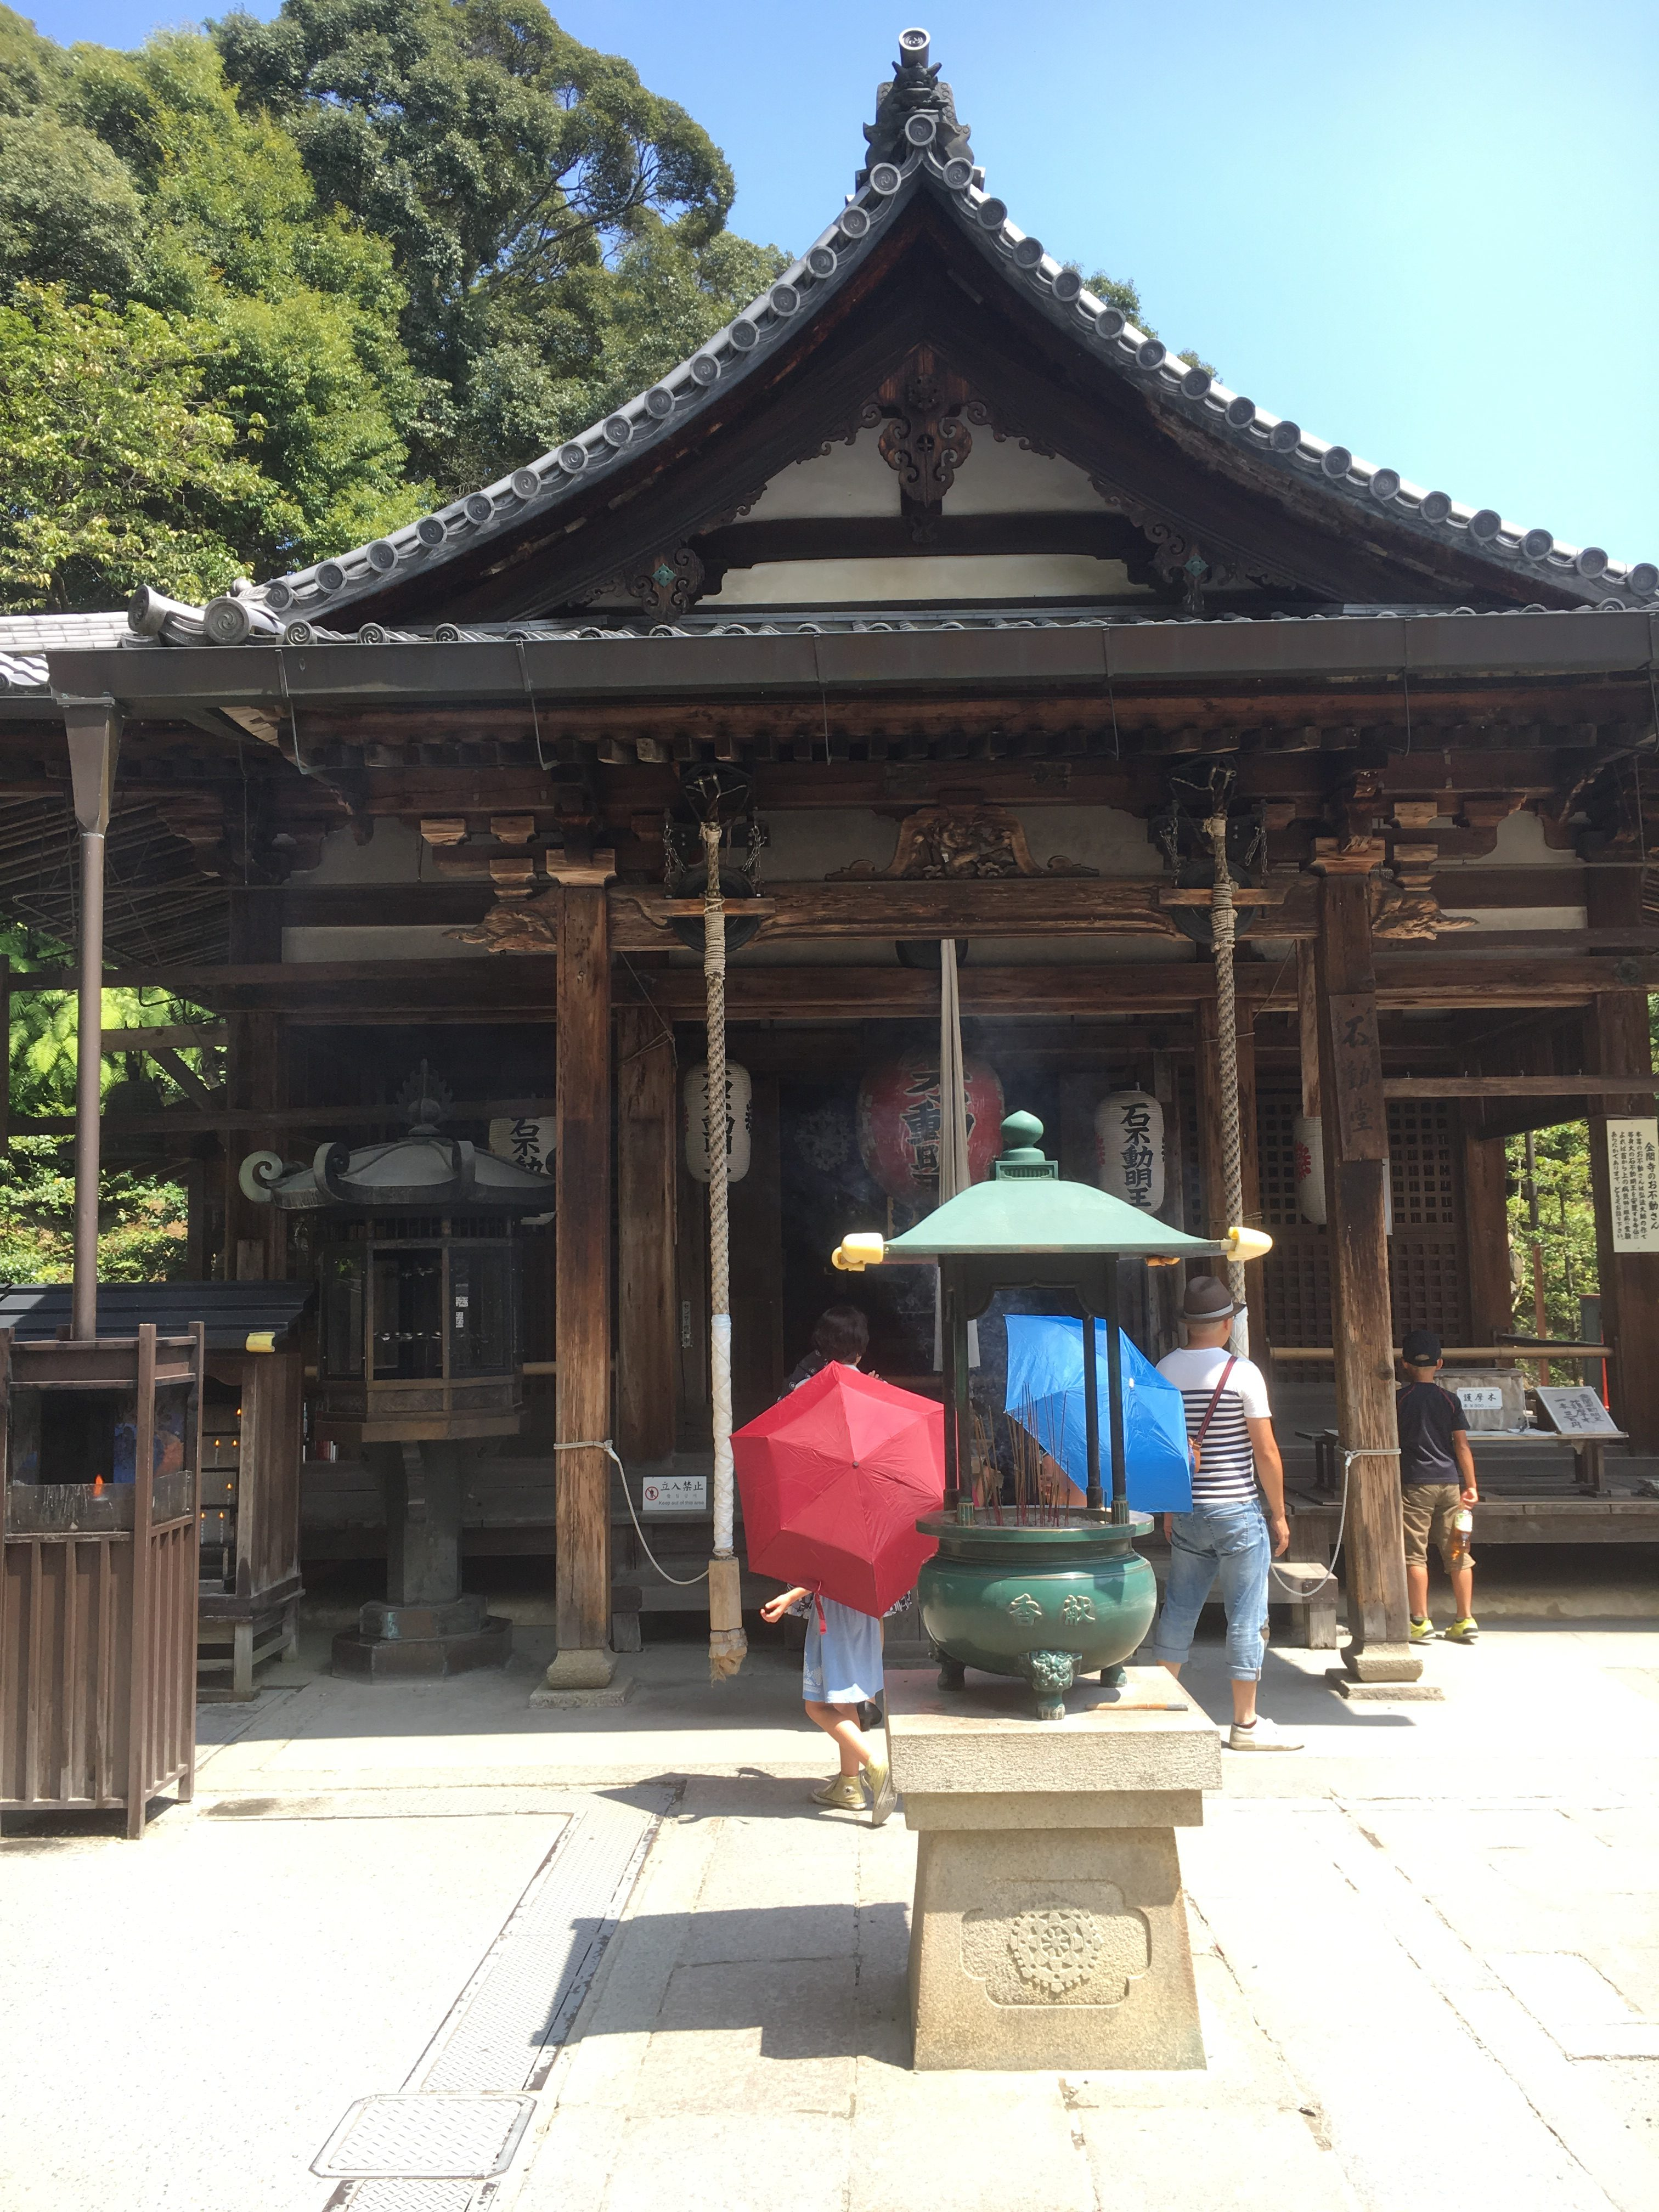 Old Japanese style temple with pot of incense and tourists